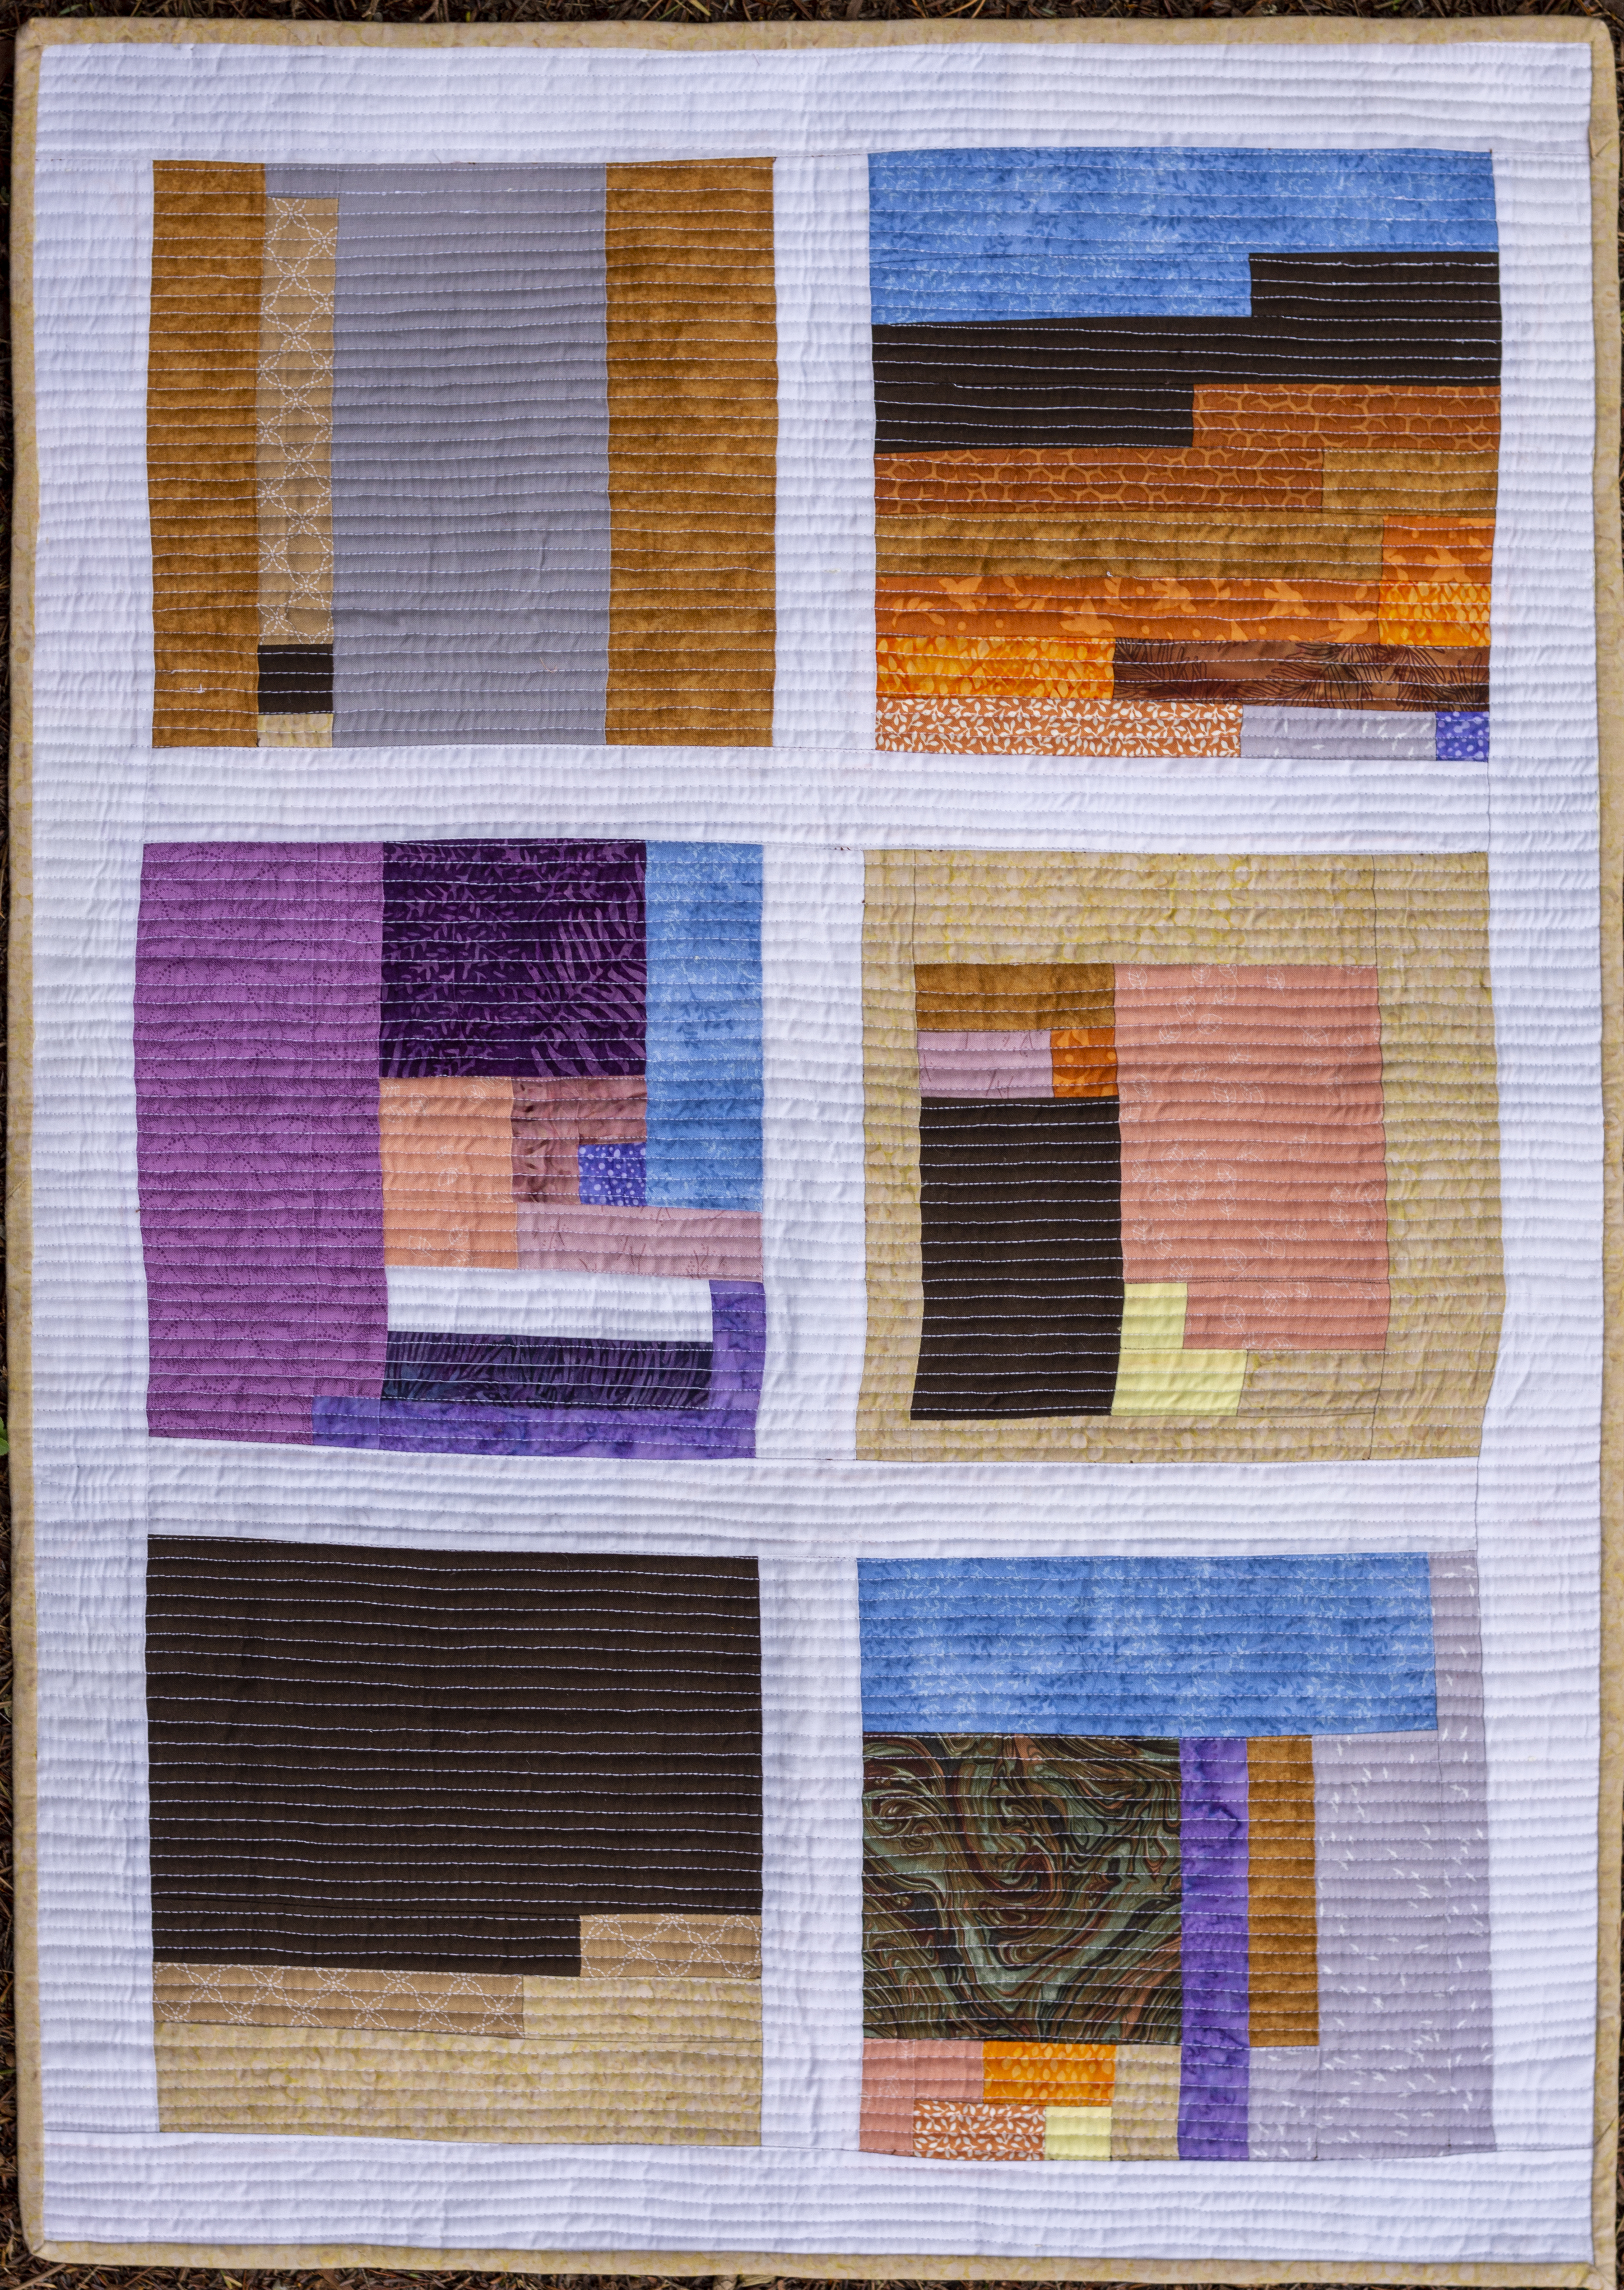 Quilt by Winnie Commers